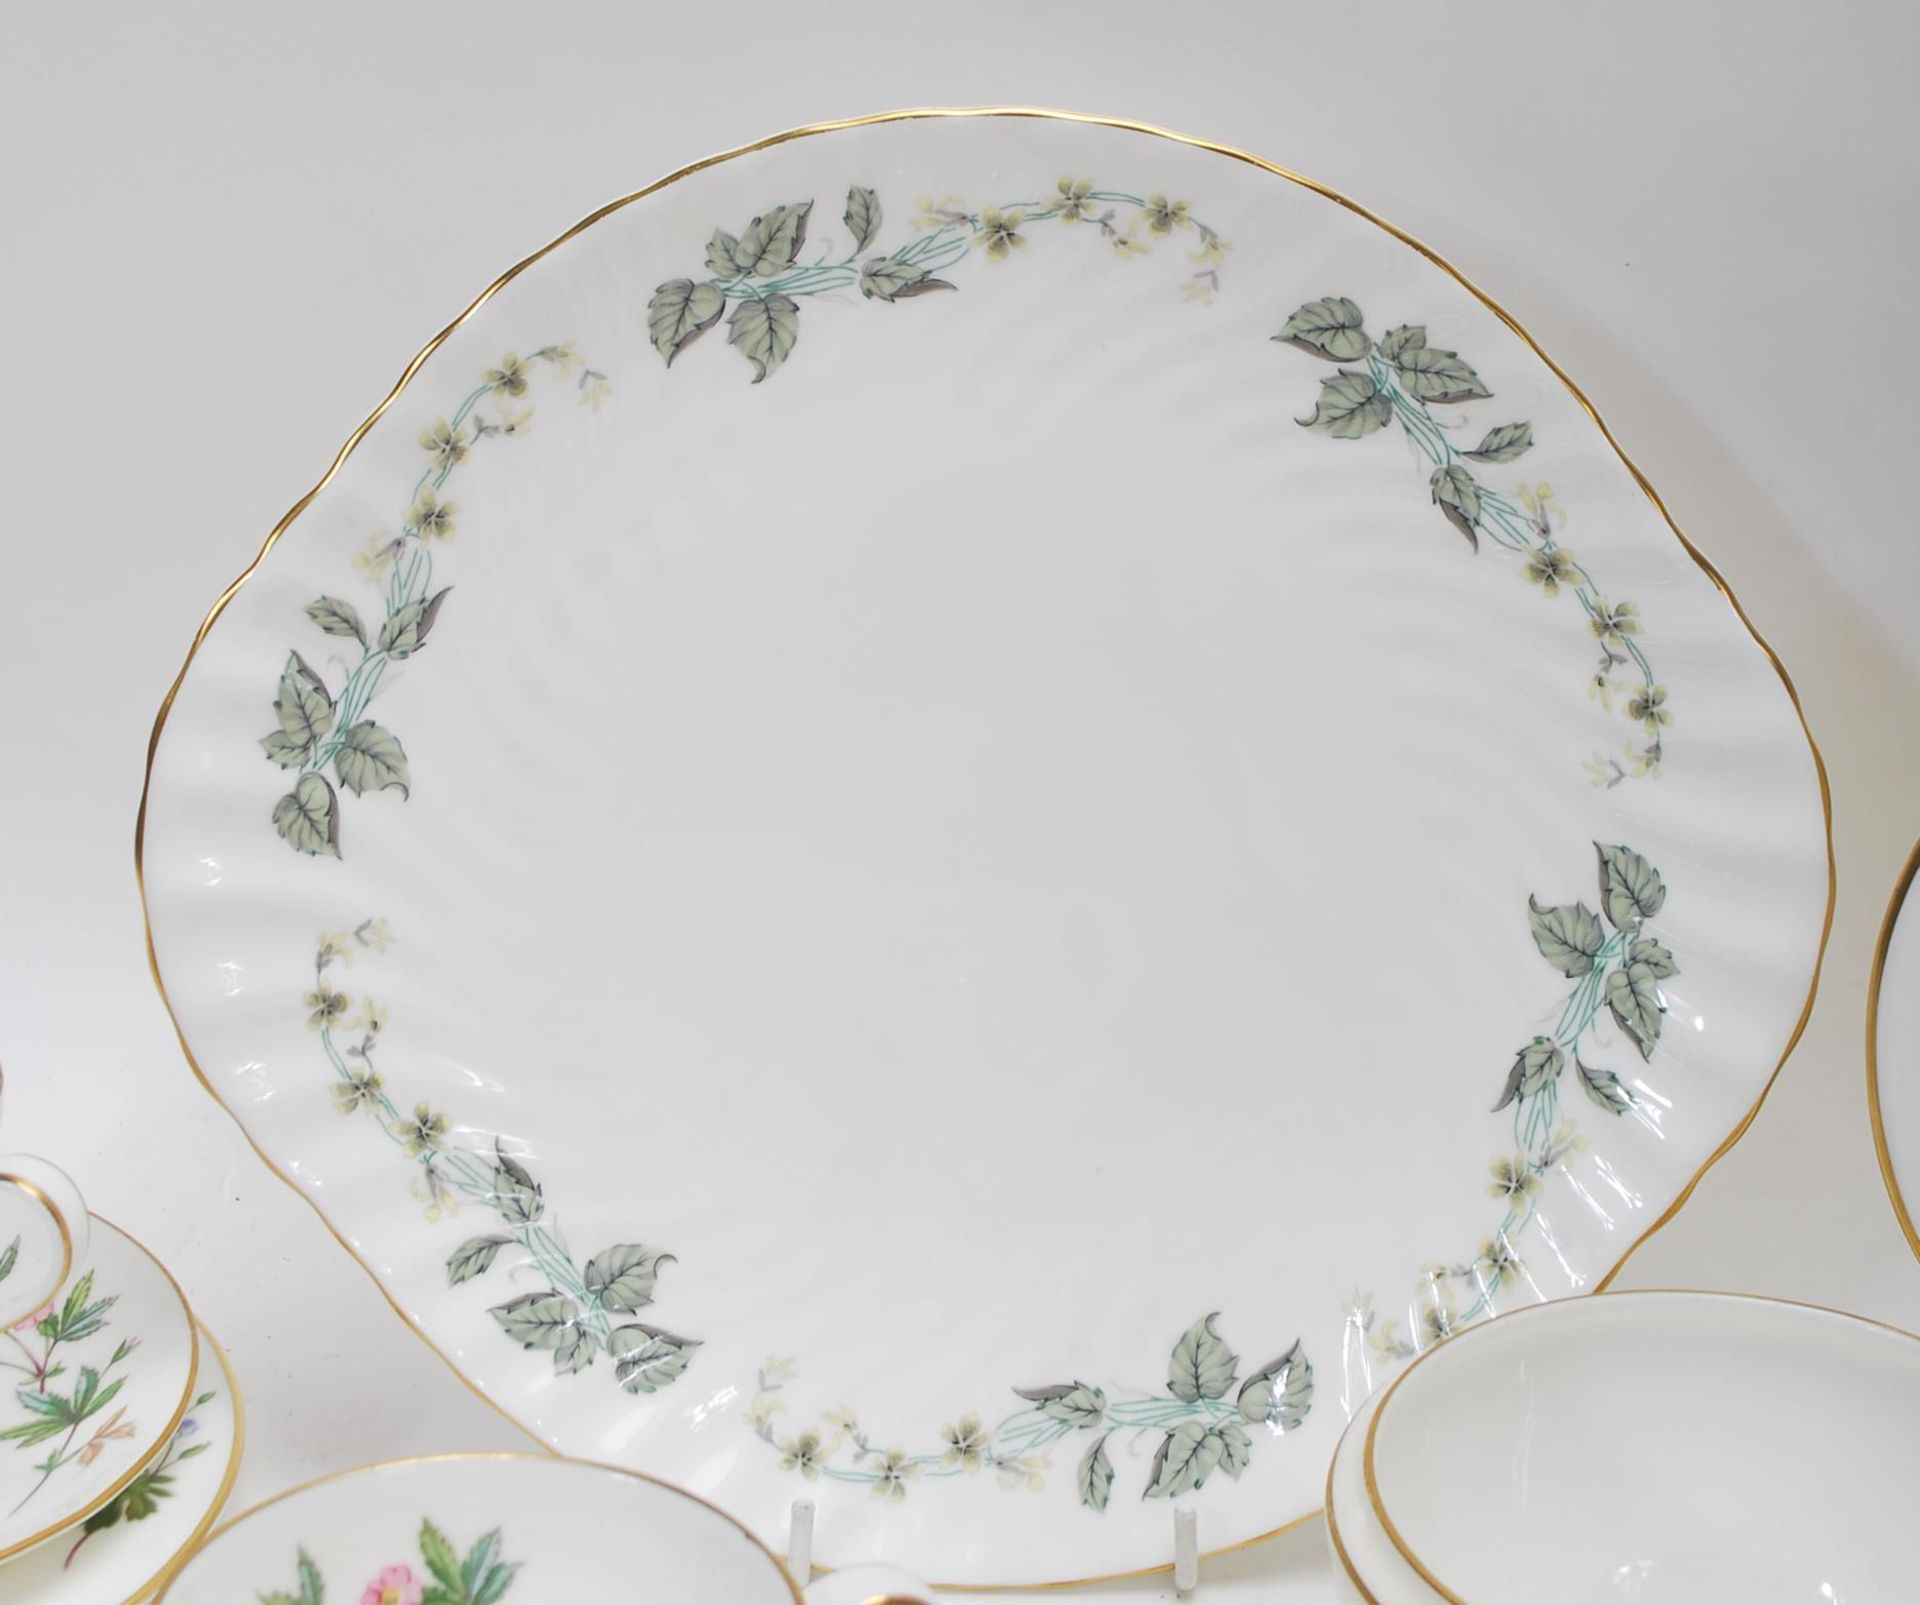 MINTON MEADOW PATTERN BONE CHINA TEA SERVICE - Image 9 of 12